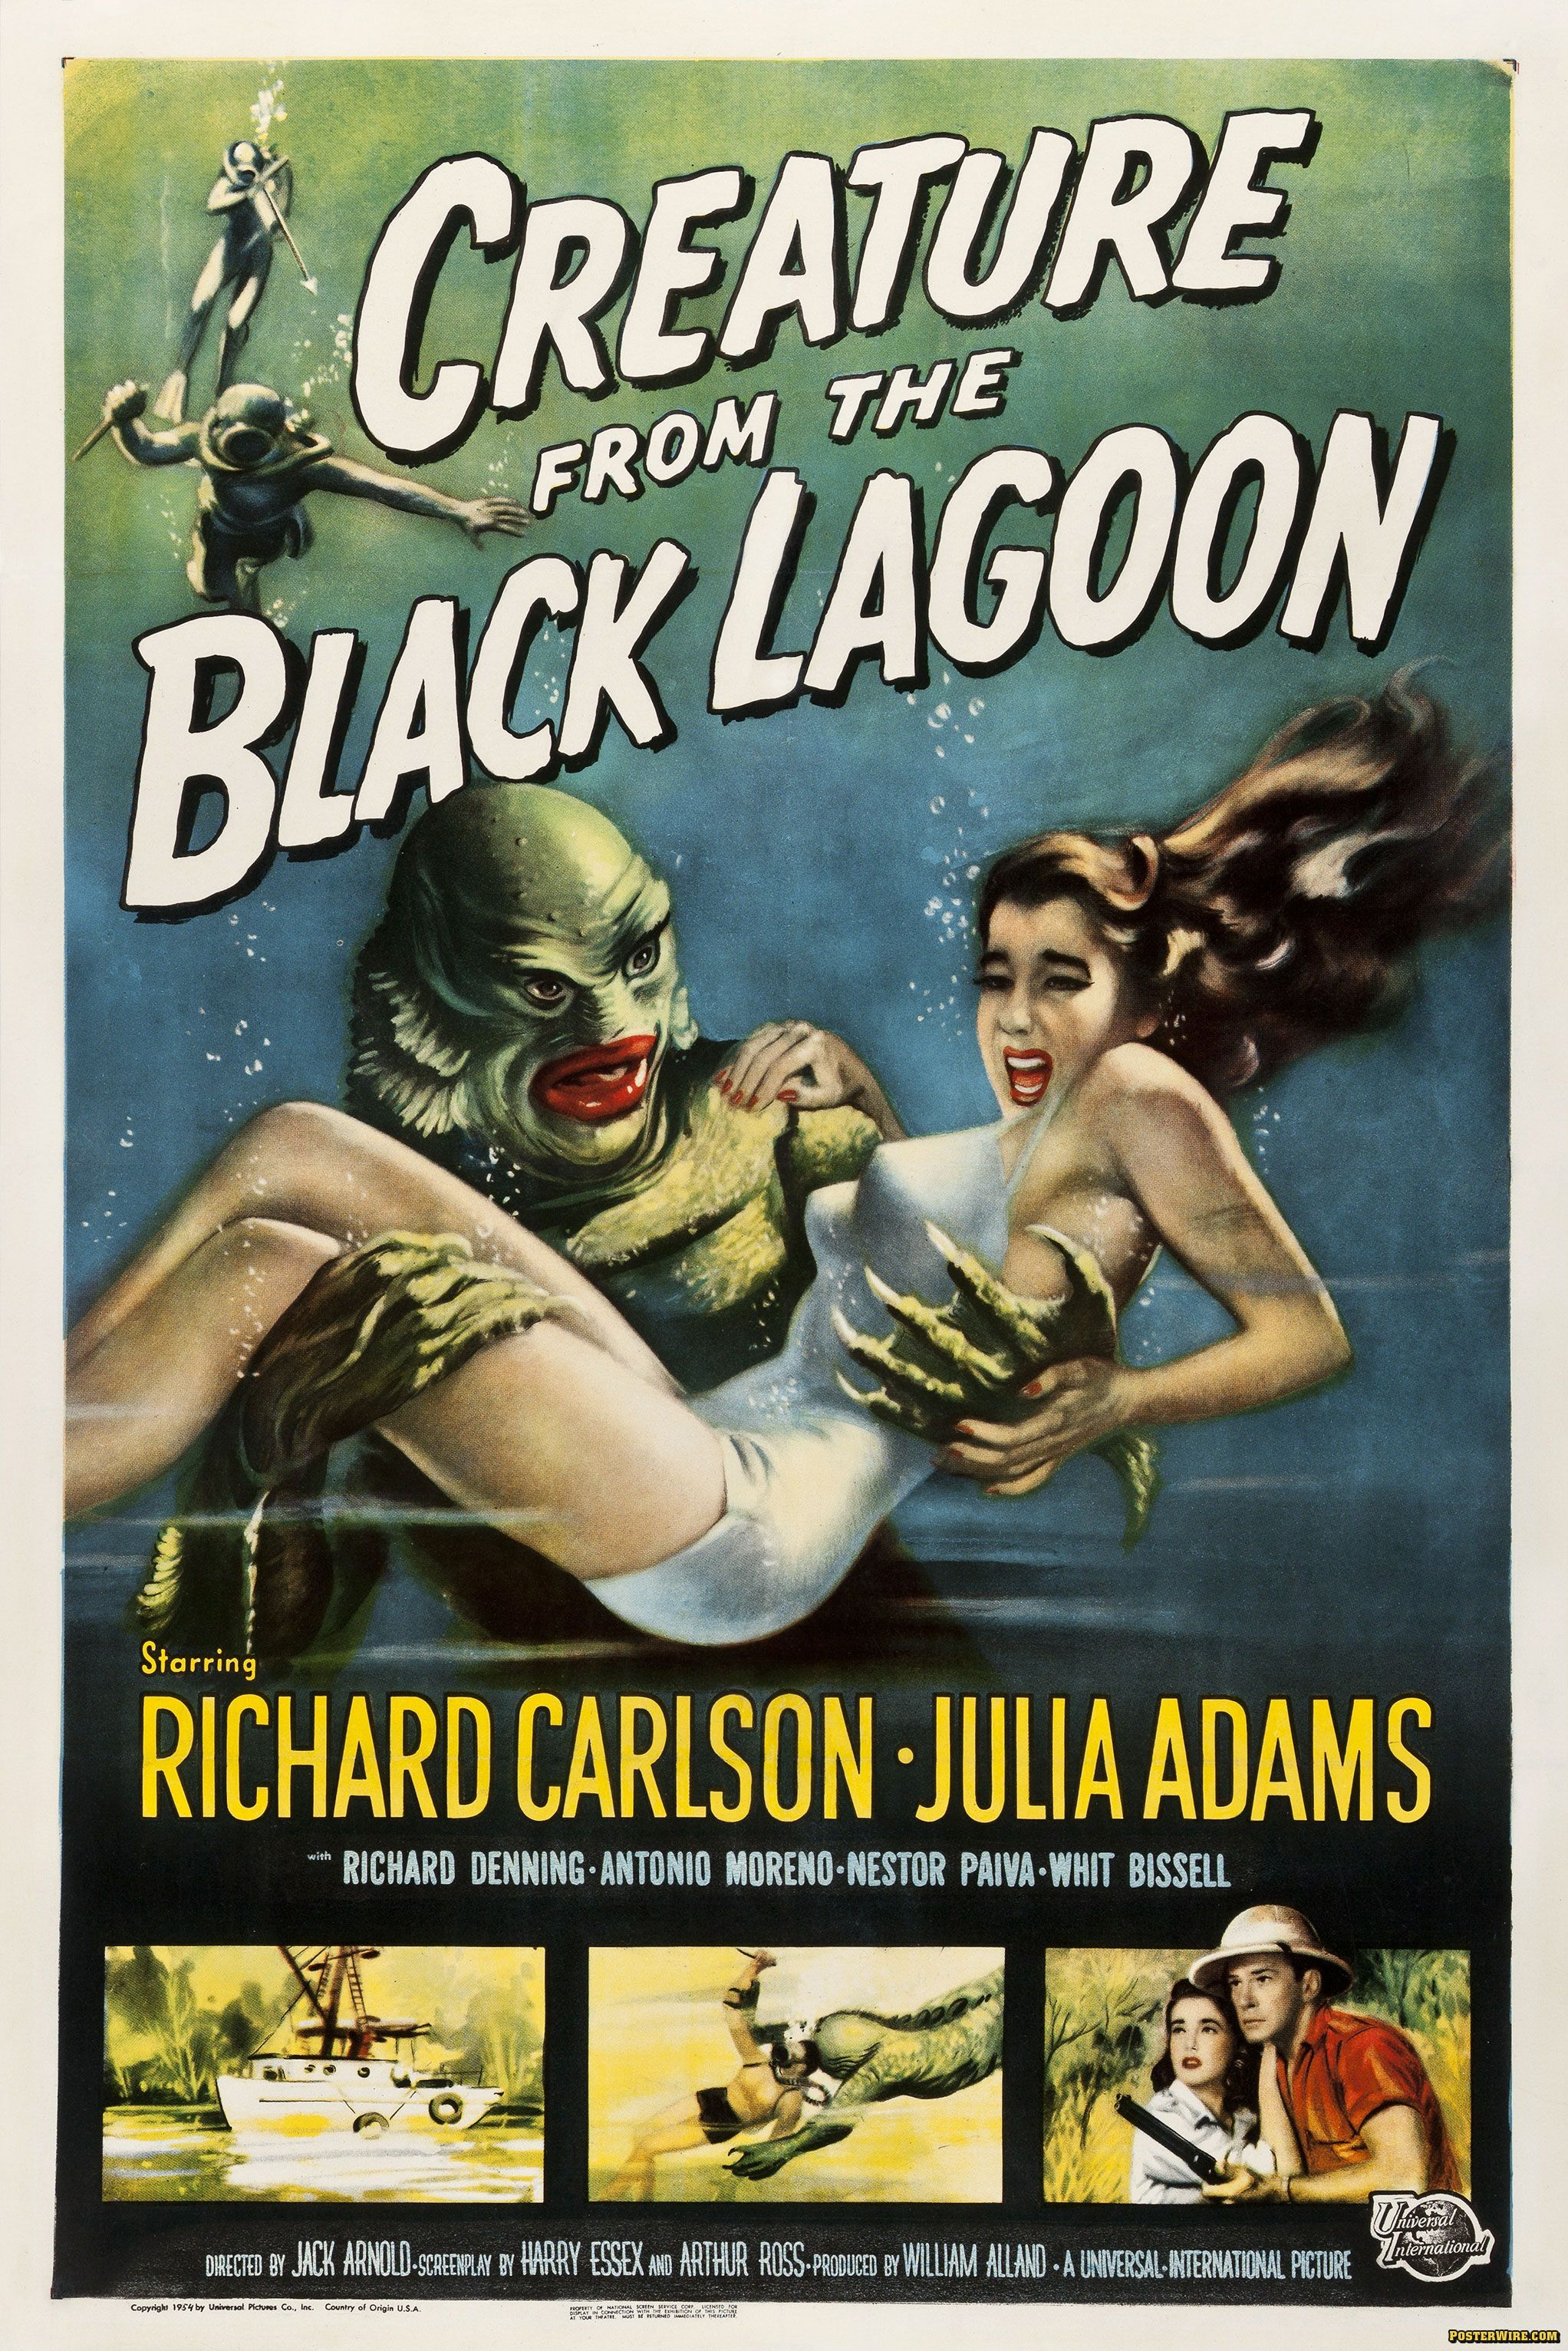 Vintage Horror Movie Posters To Get You In The Mood For Halloween Classic Horror Movies Classic Movie Posters Vintage Movies